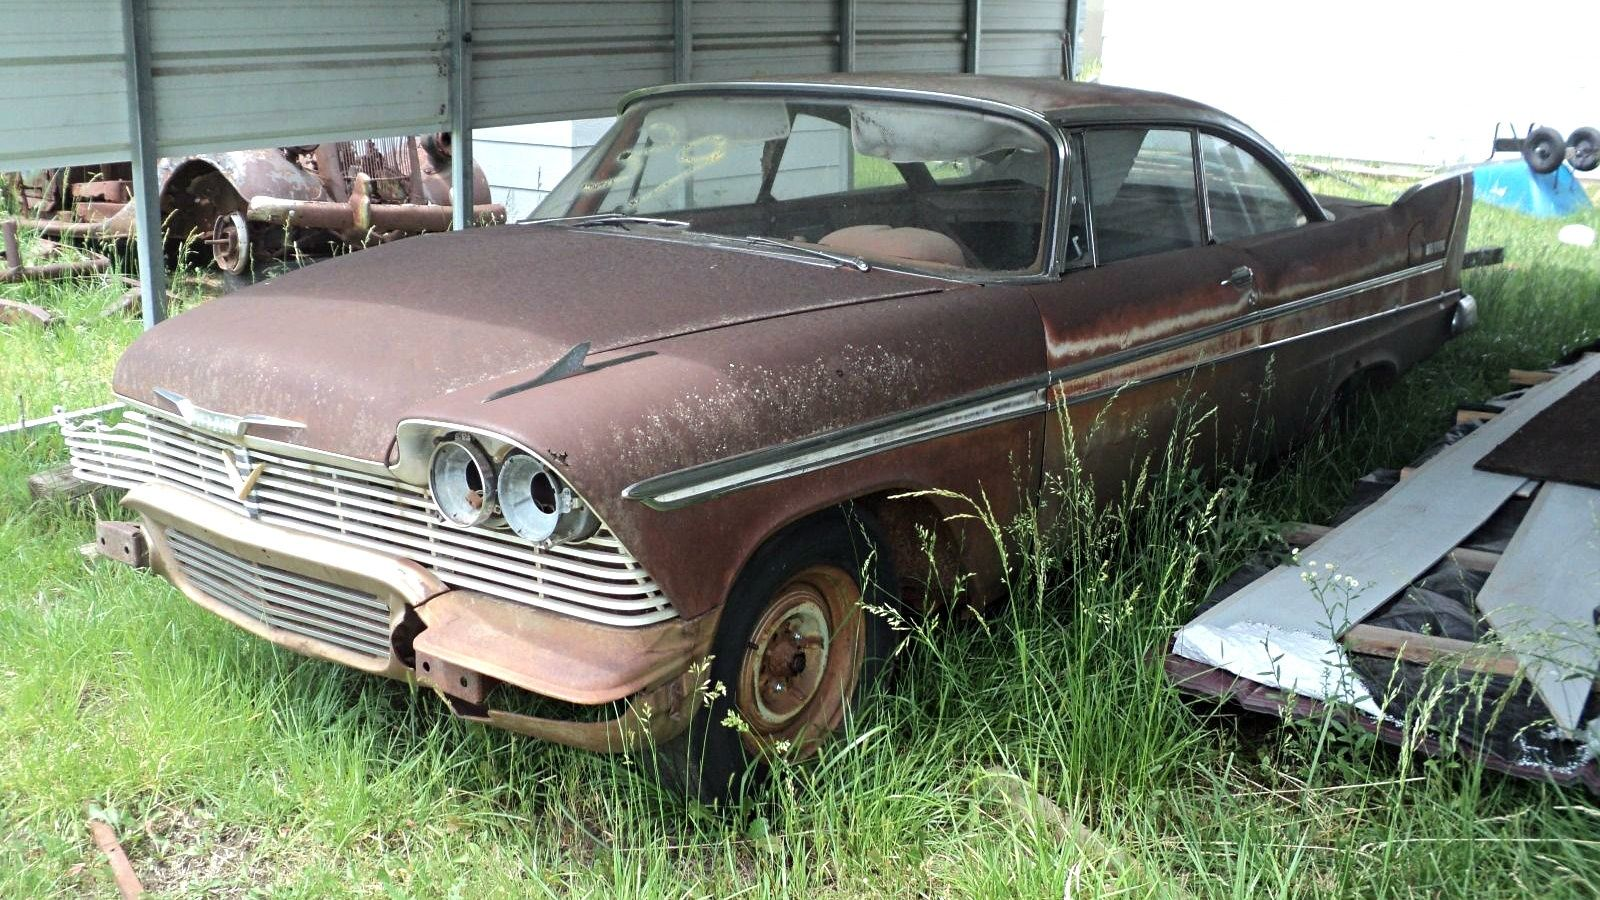 1955 dodge royal barn find for sale - Movie Look Alike 1958 Plymouth Belvedere Find This Pin And More On Barn Finds